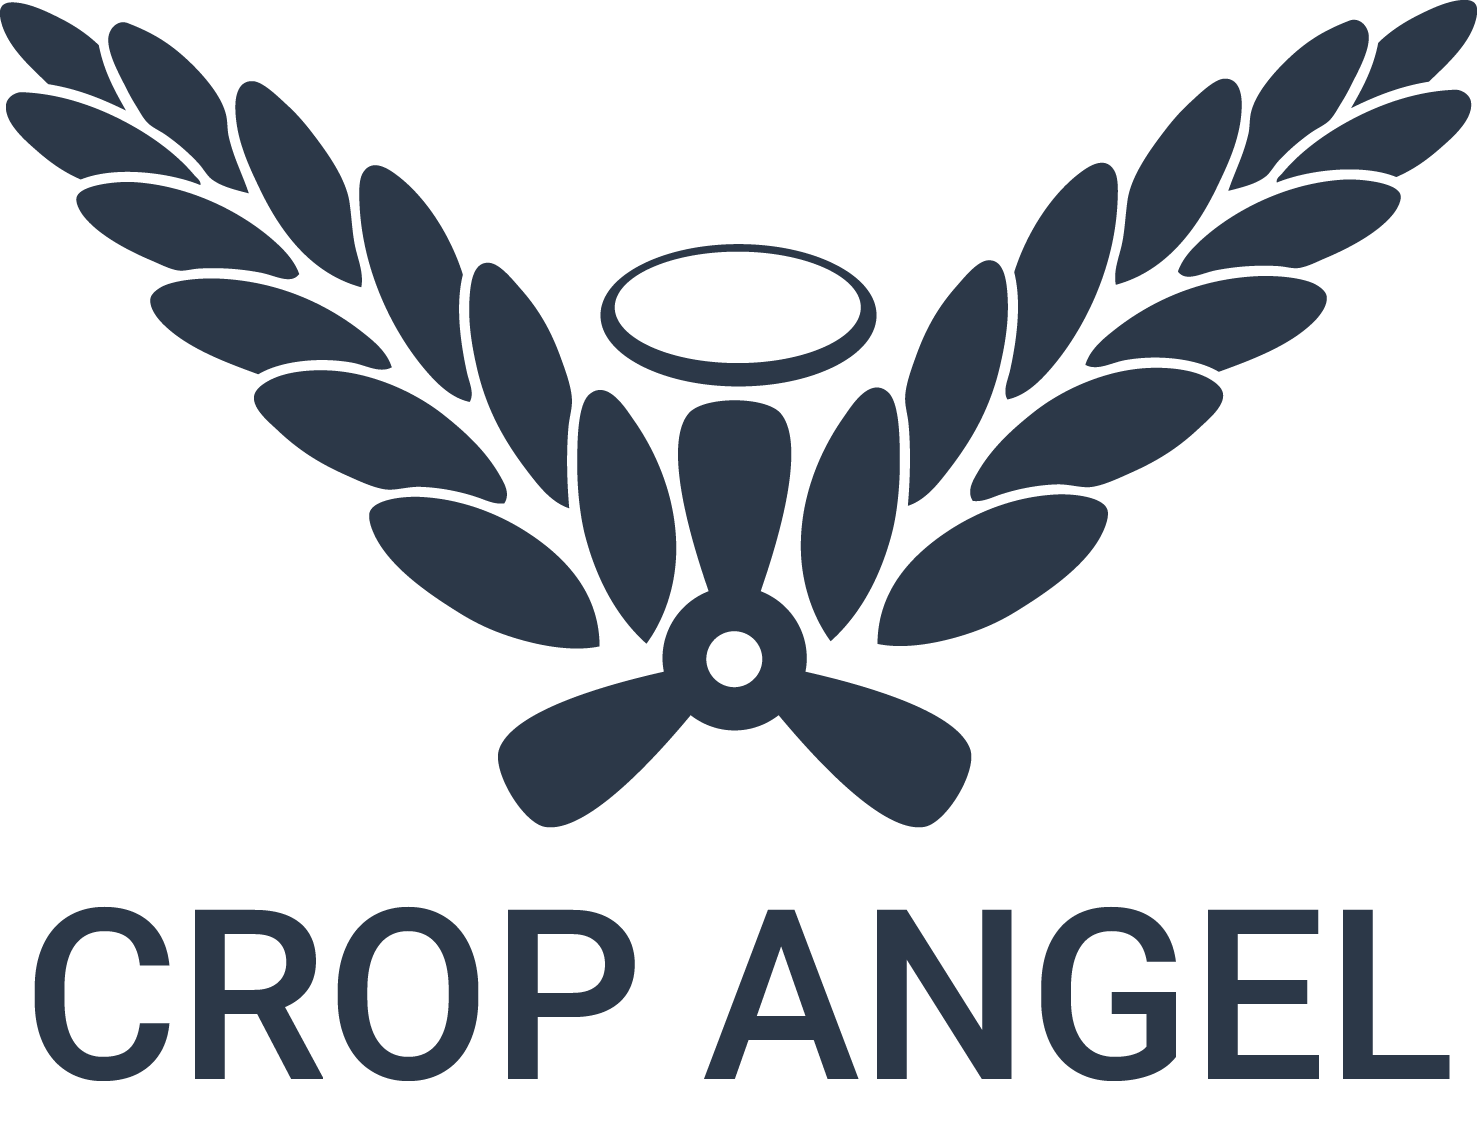 Crop Angel